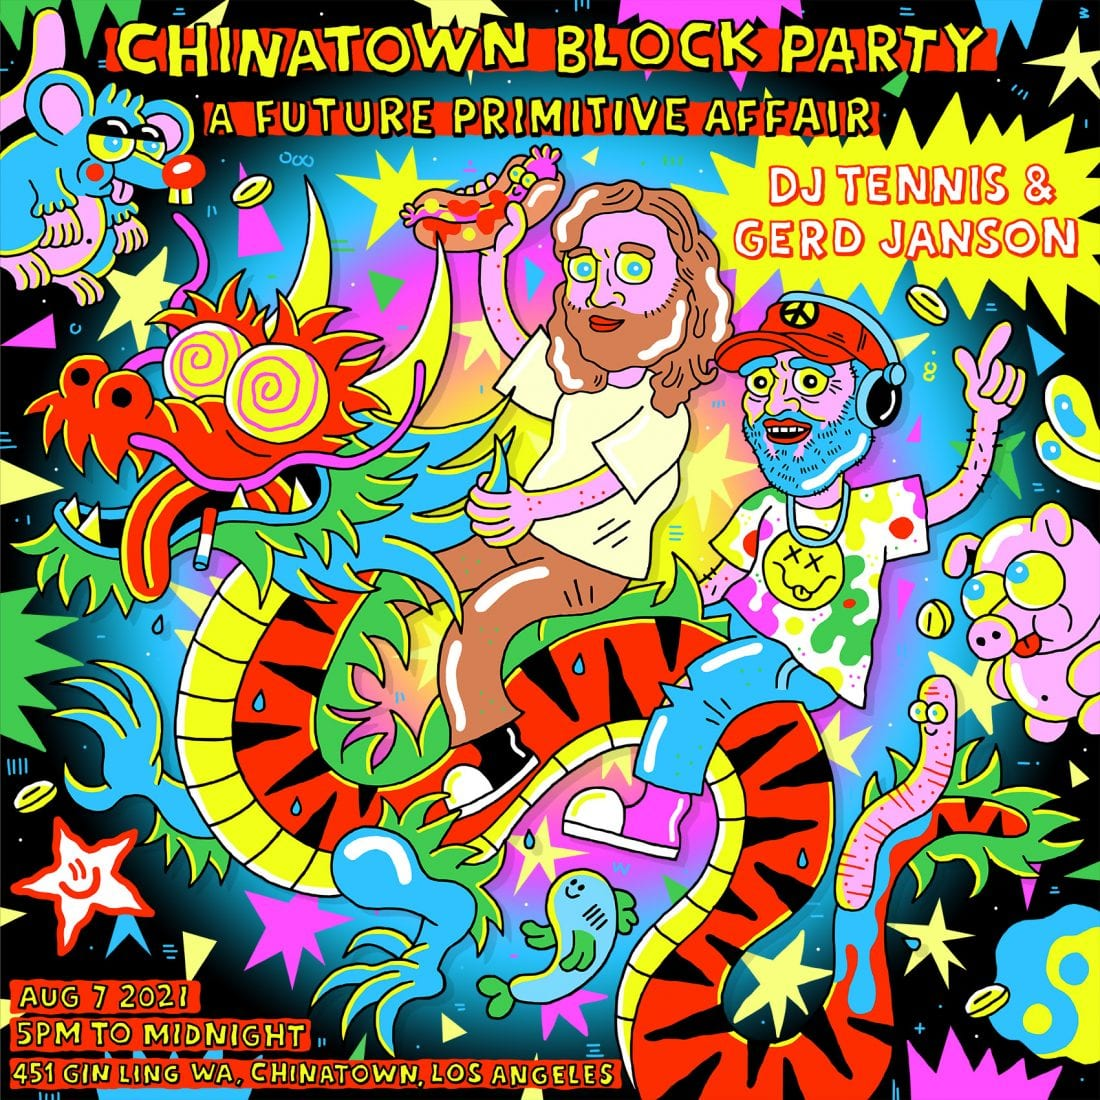 Chinatown Block Party